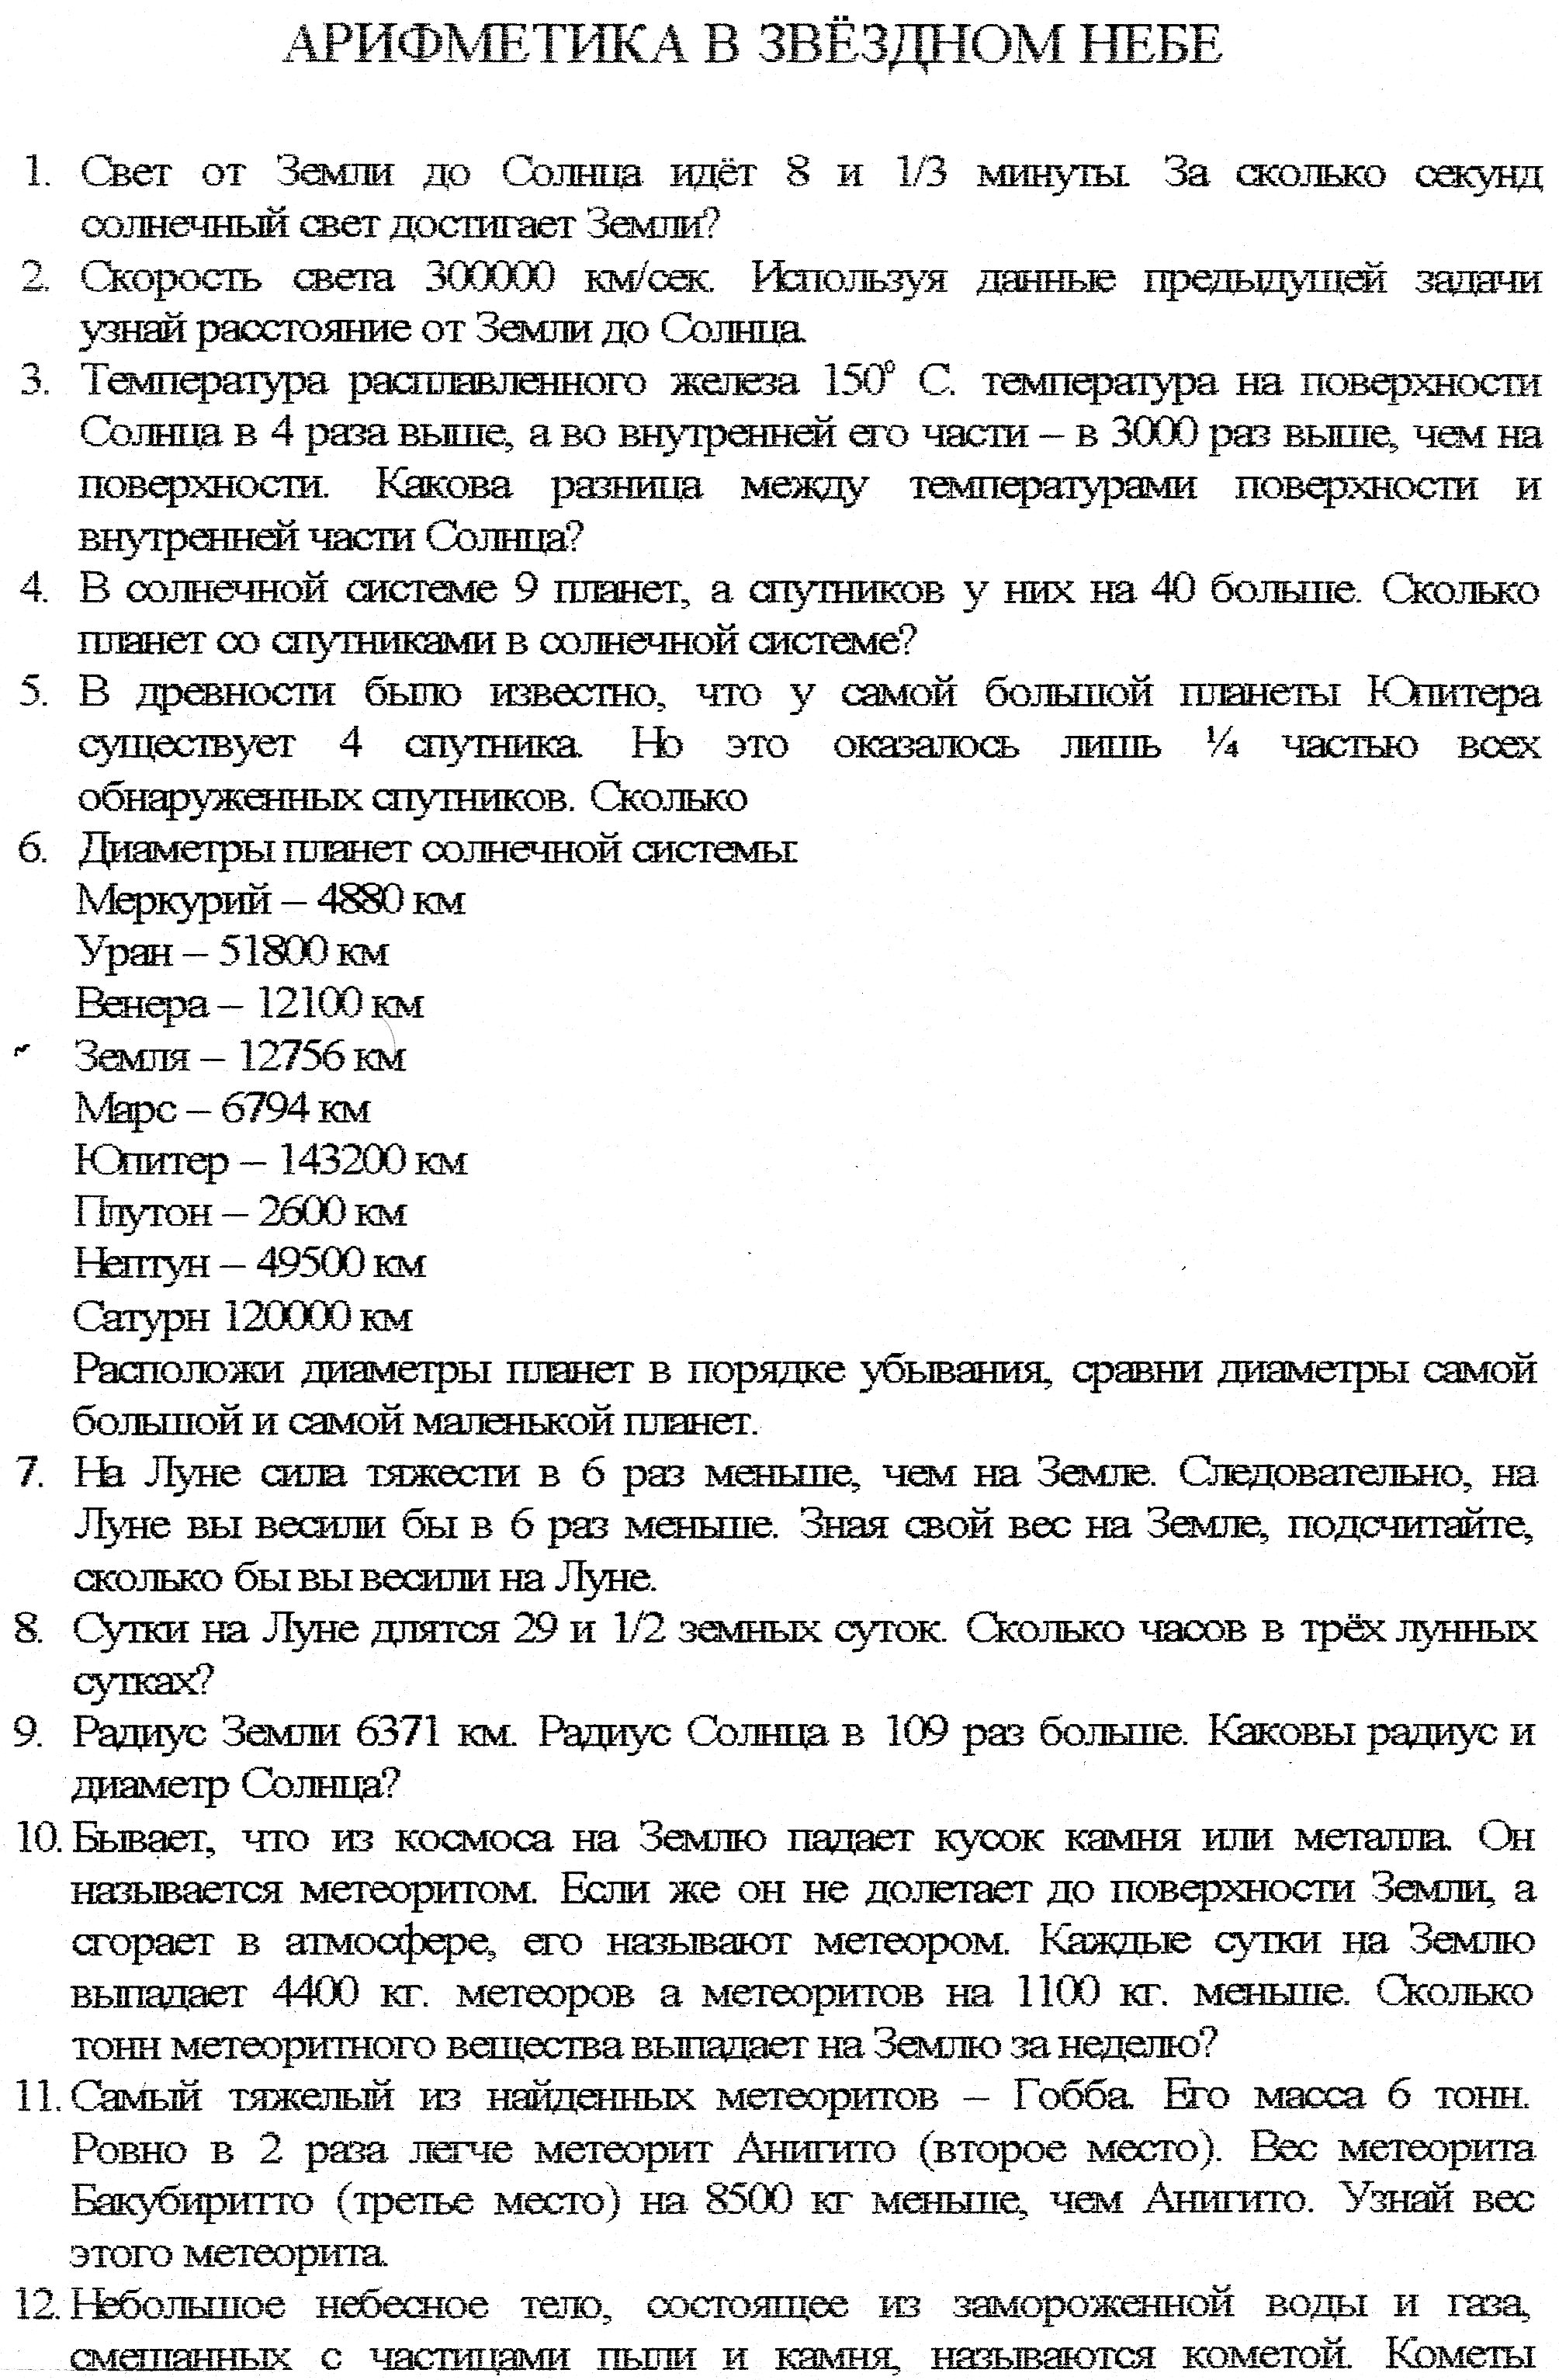 C:\Users\Валентина\Pictures\img165.jpg